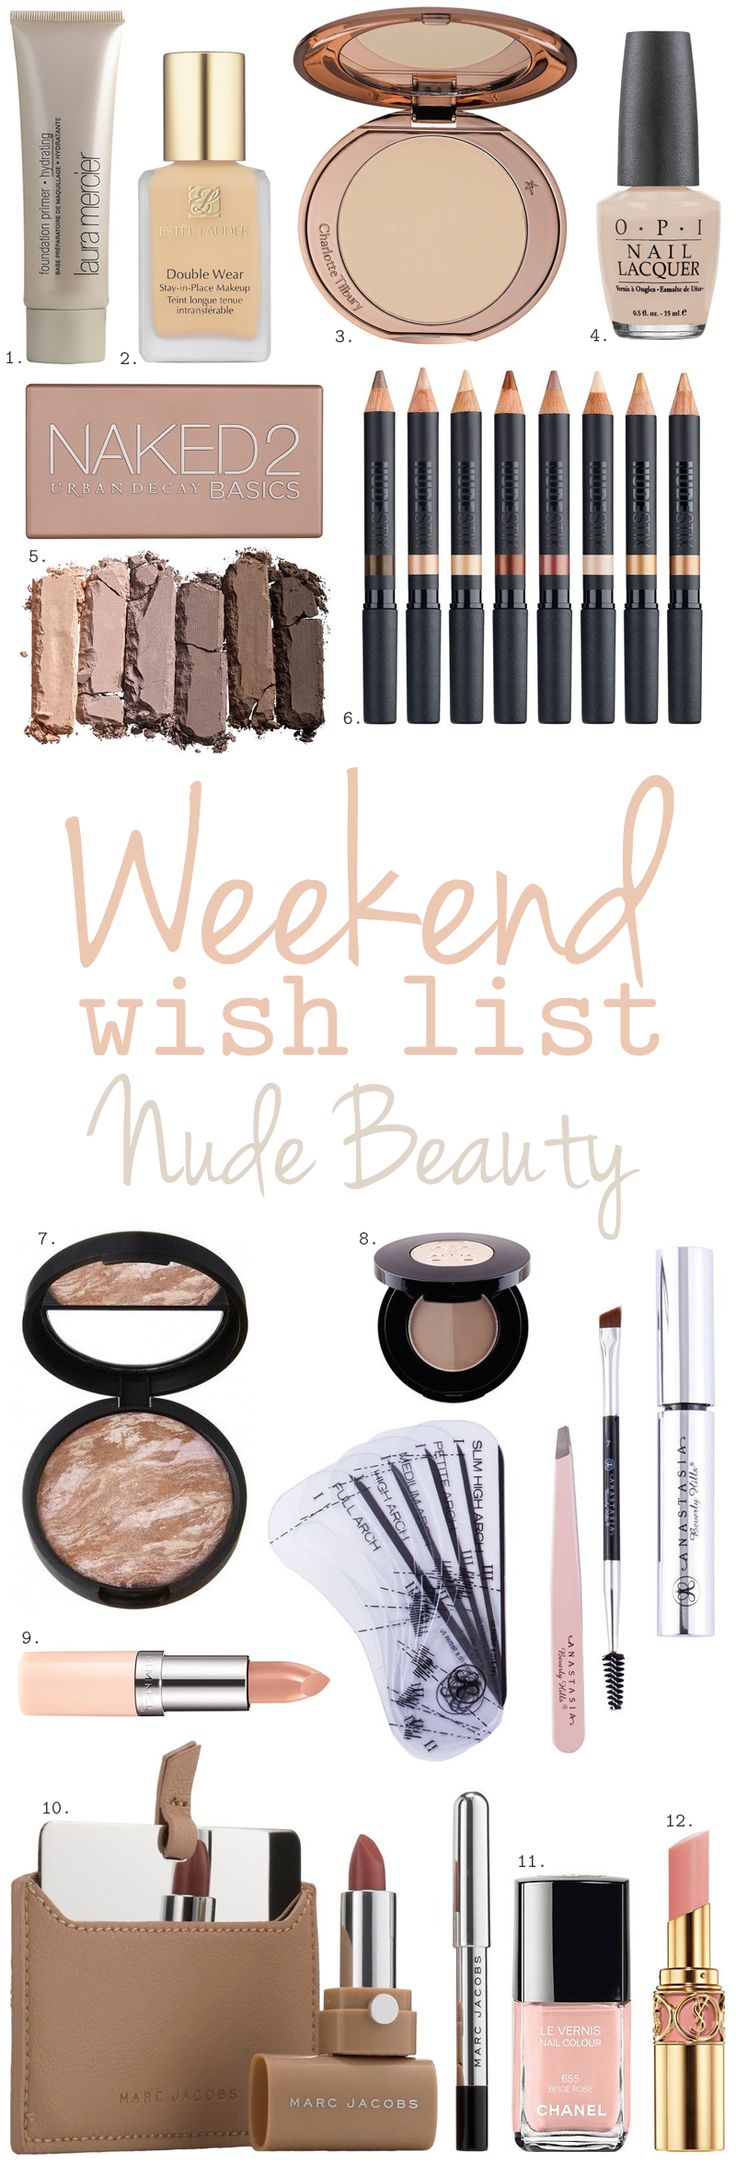 Nude Beauty - the best nude make-up buys | The Little Beauty Guide.